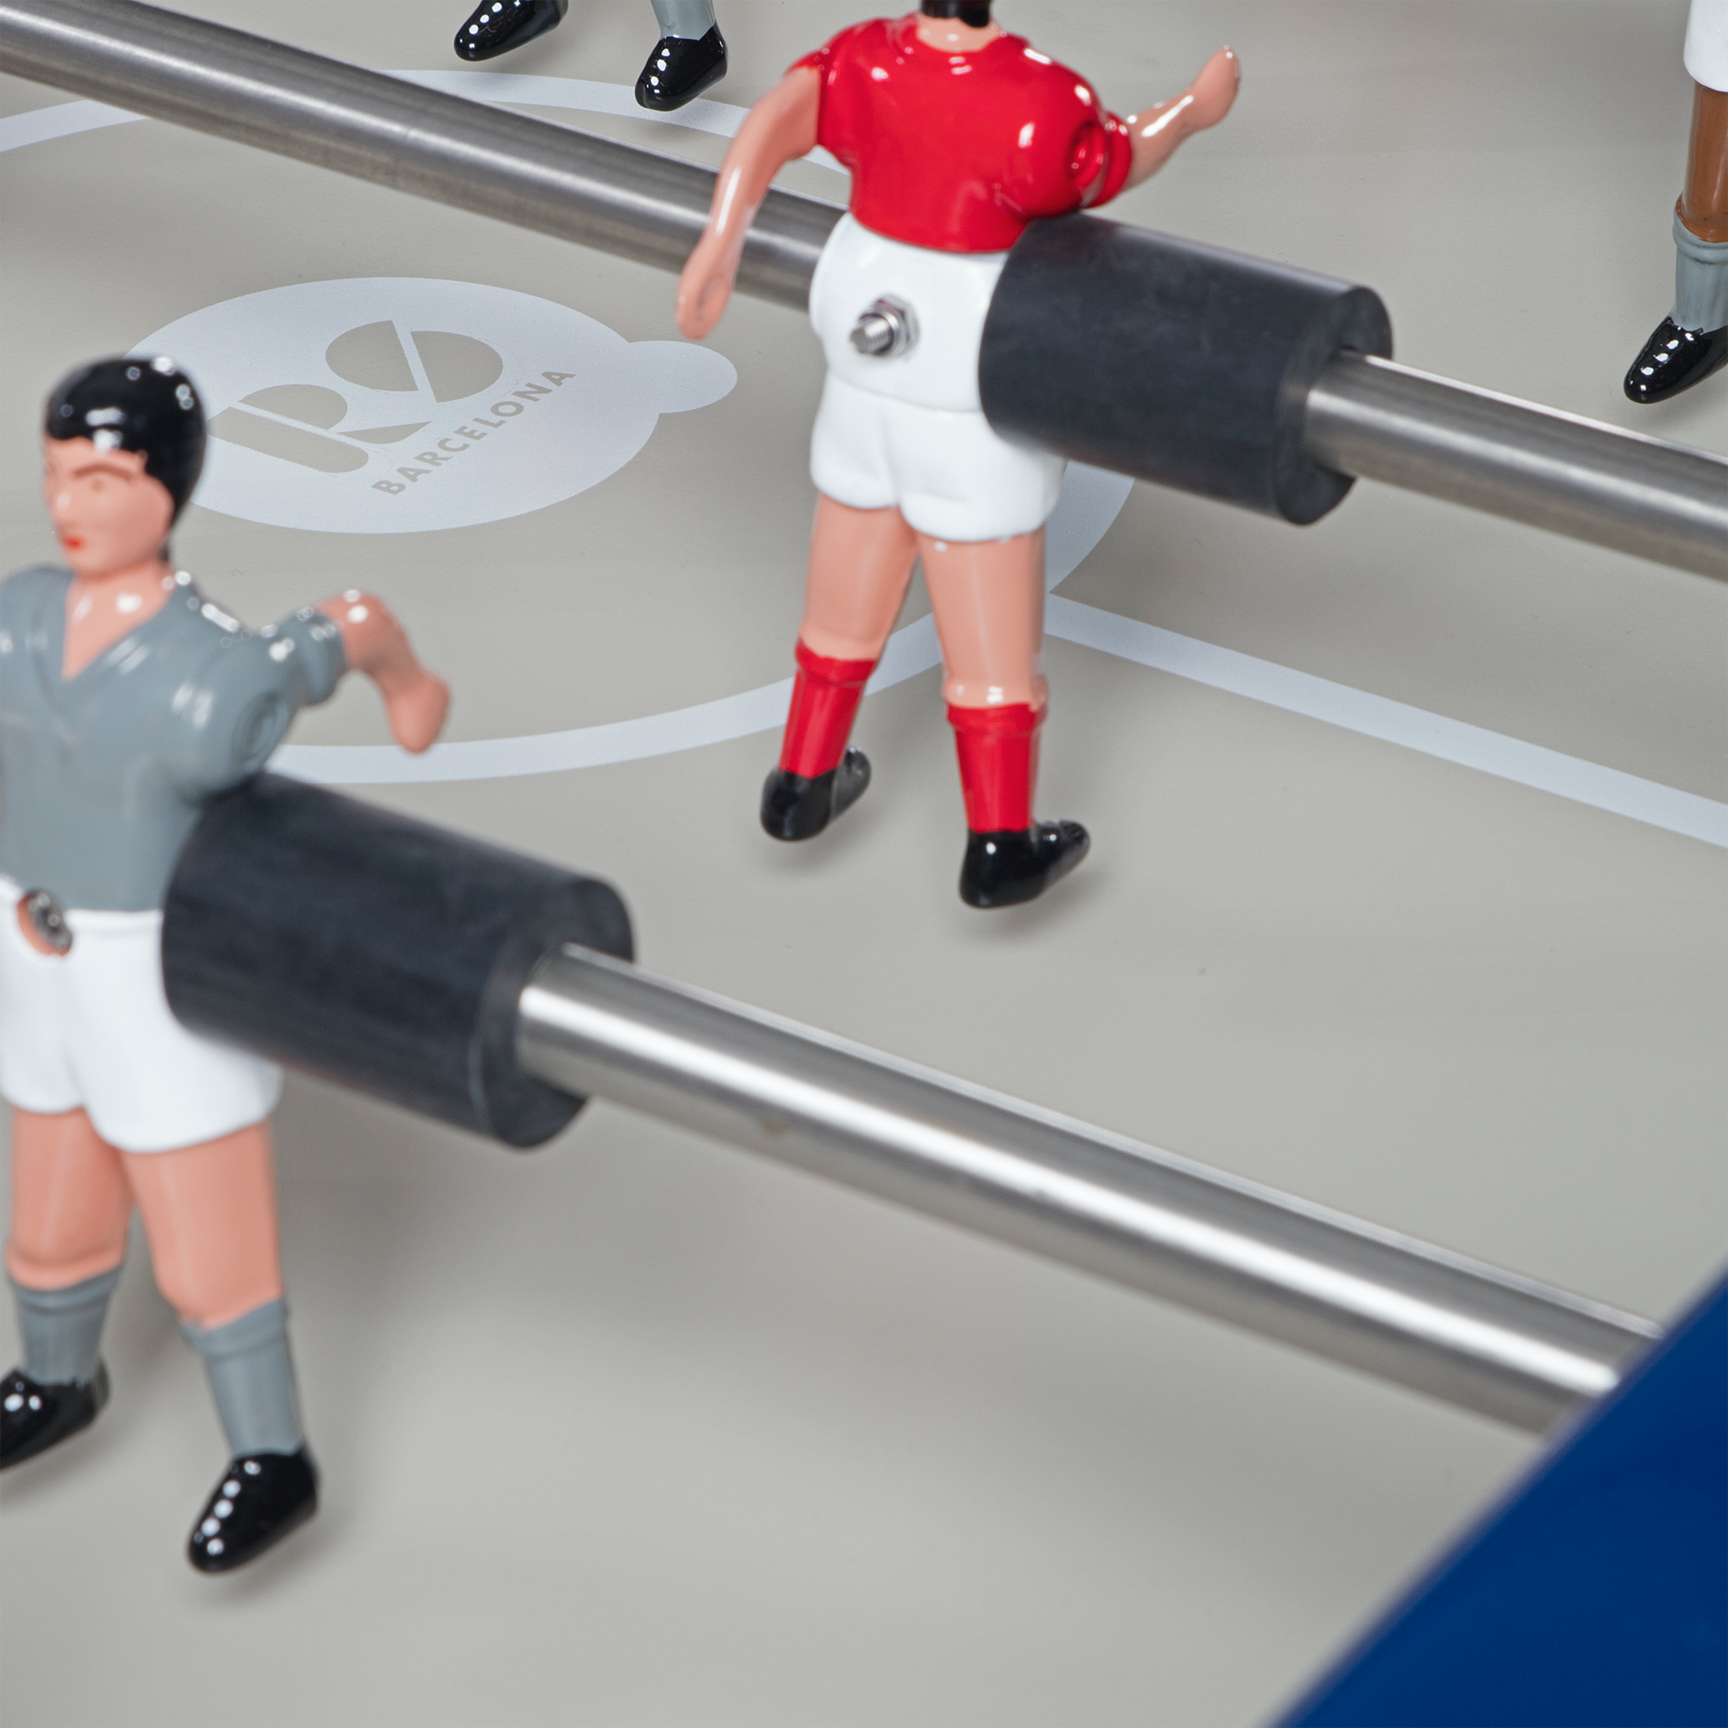 A quick intro to our world-class foosball brands